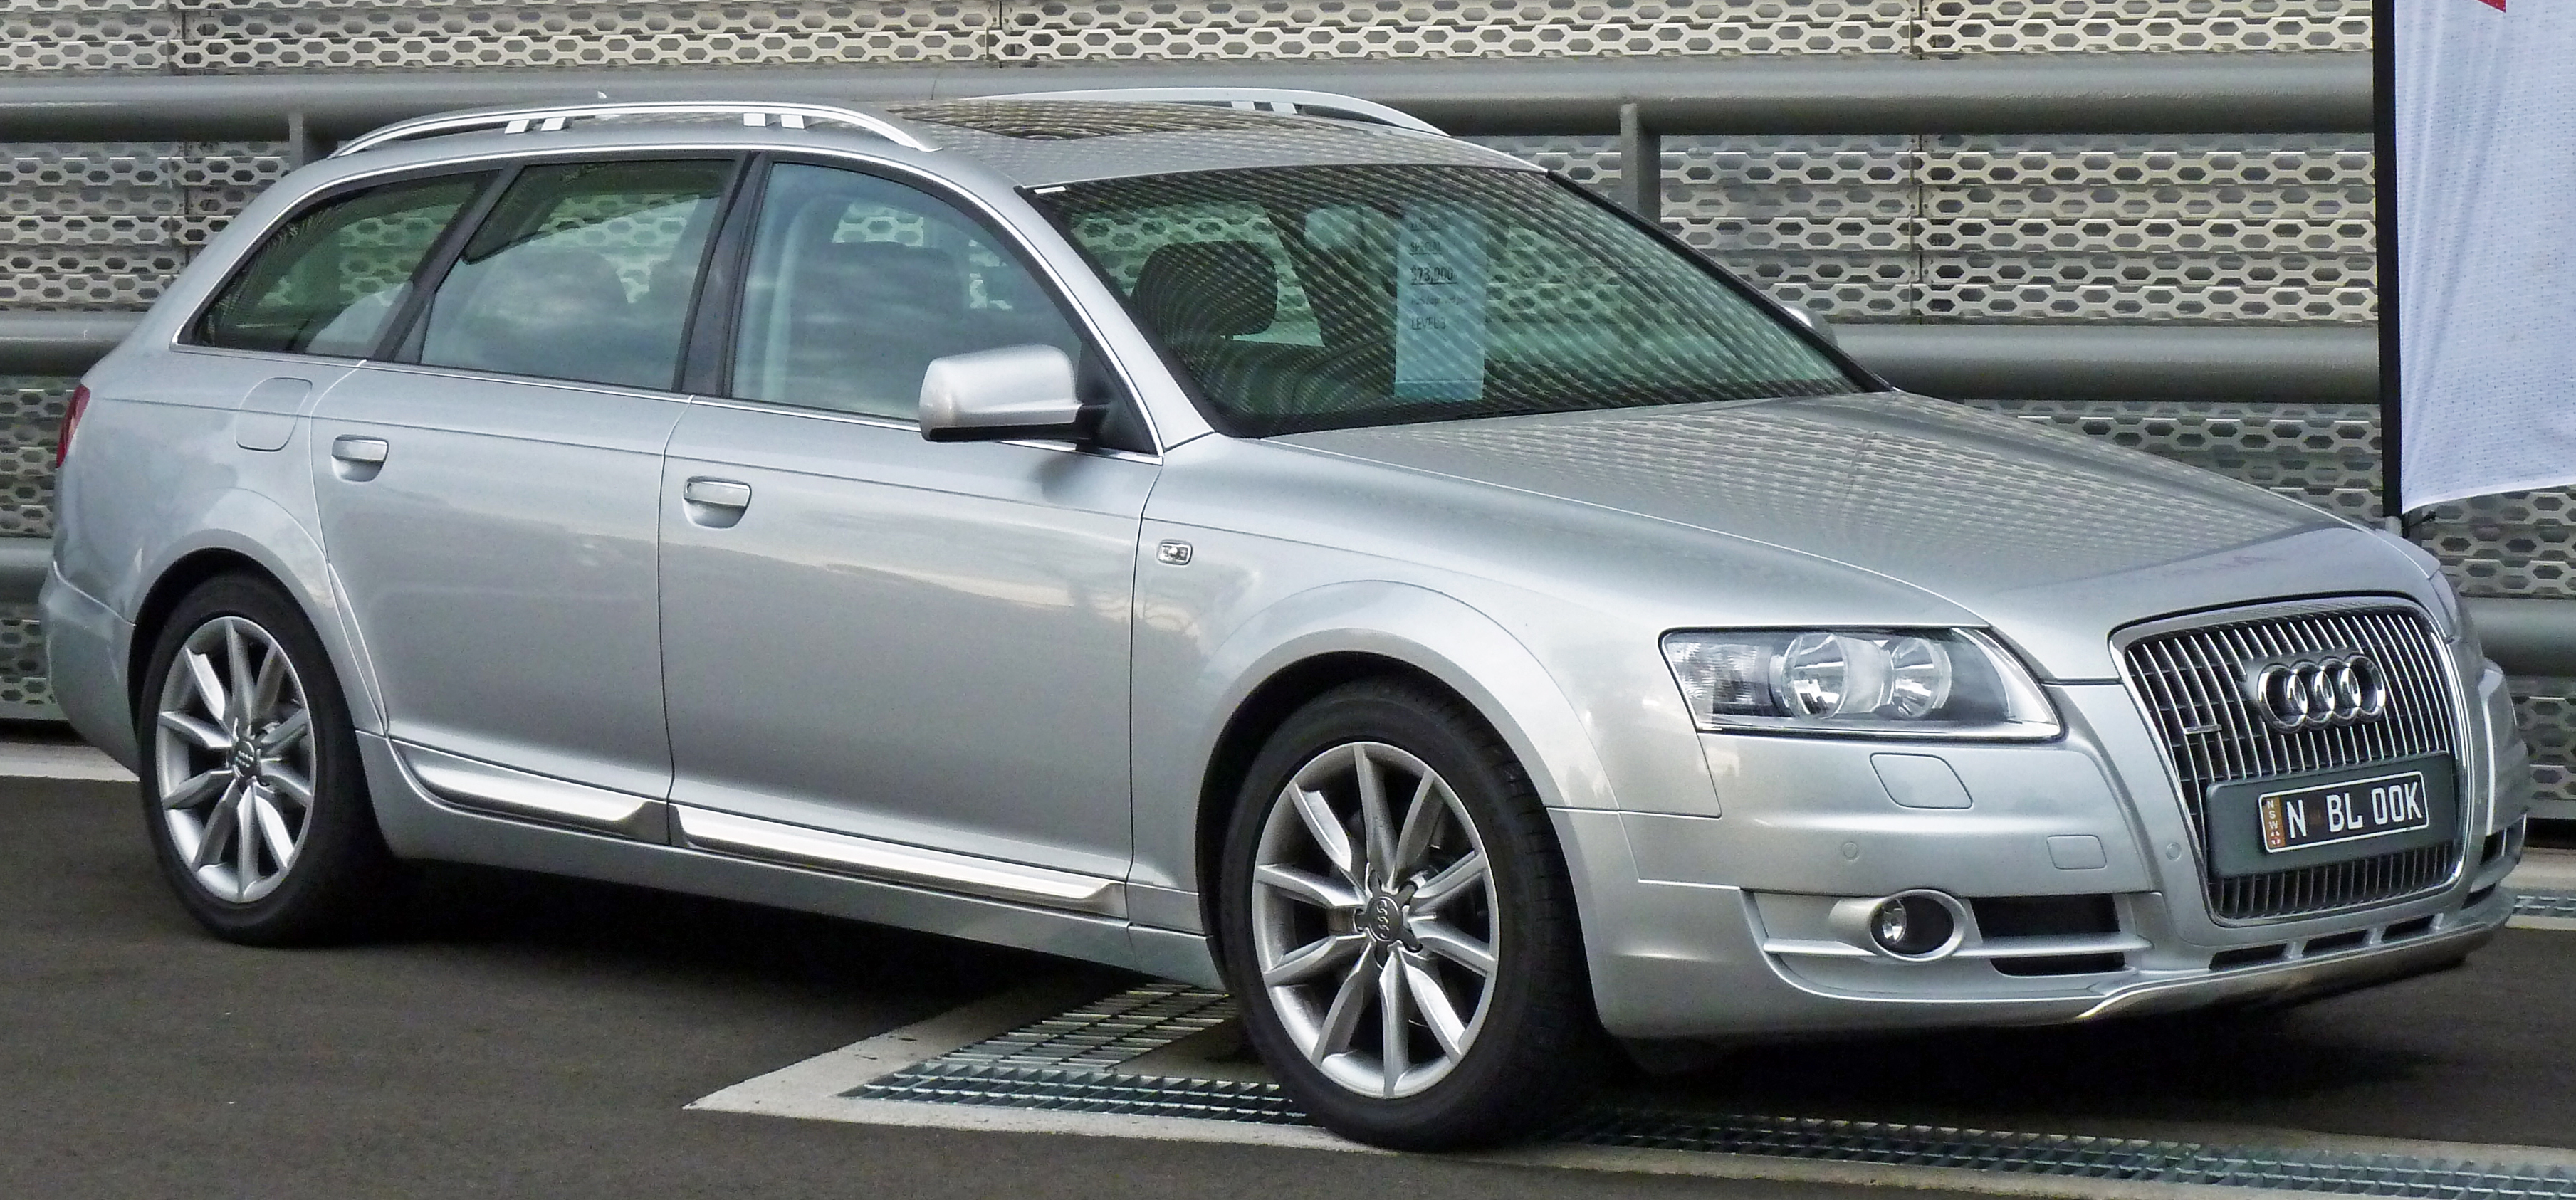 file 2007 audi a6 4f allroad quattro 3 0 tdi station. Black Bedroom Furniture Sets. Home Design Ideas